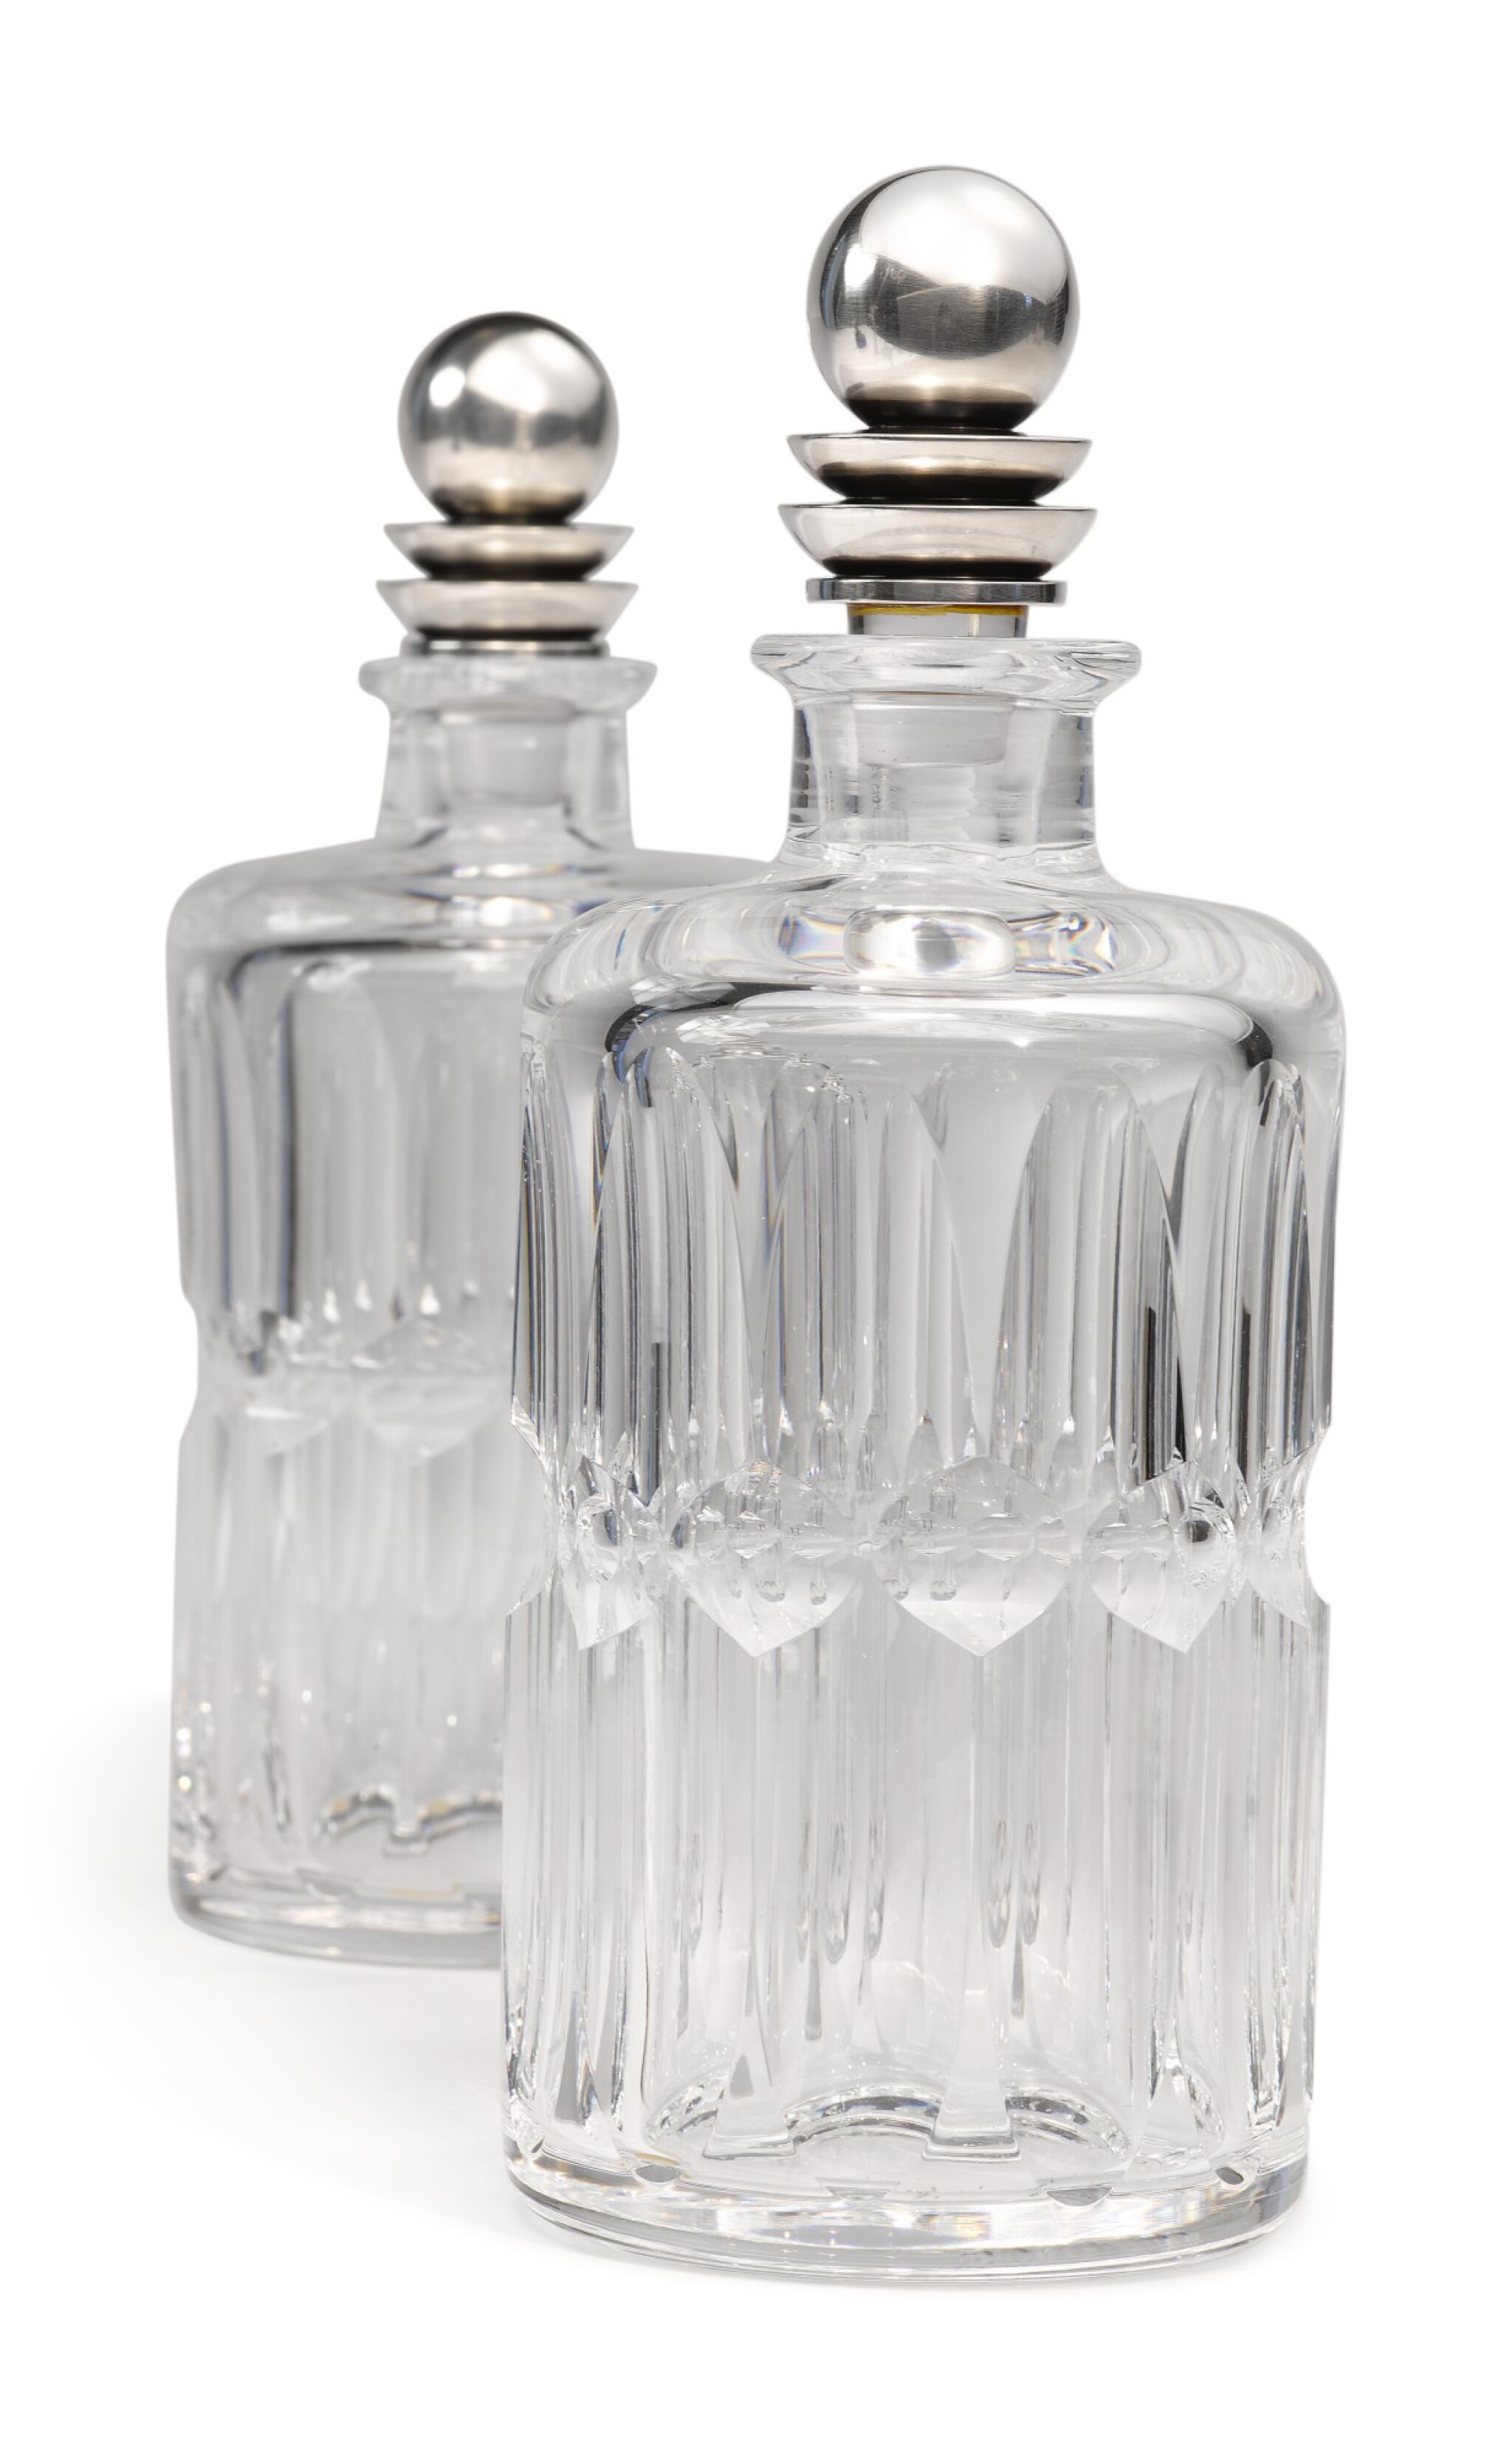 View full screen - View 1 of Lot 327. A PAIR OF GLASS DECANTERS WITH DANISH SILVER STOPPERS, NO. 206C, DESIGNED BY HARALD NIELSEN, GEORG JENSEN SILVERSMITHY, COPENHAGEN, CIRCA 1915-27.